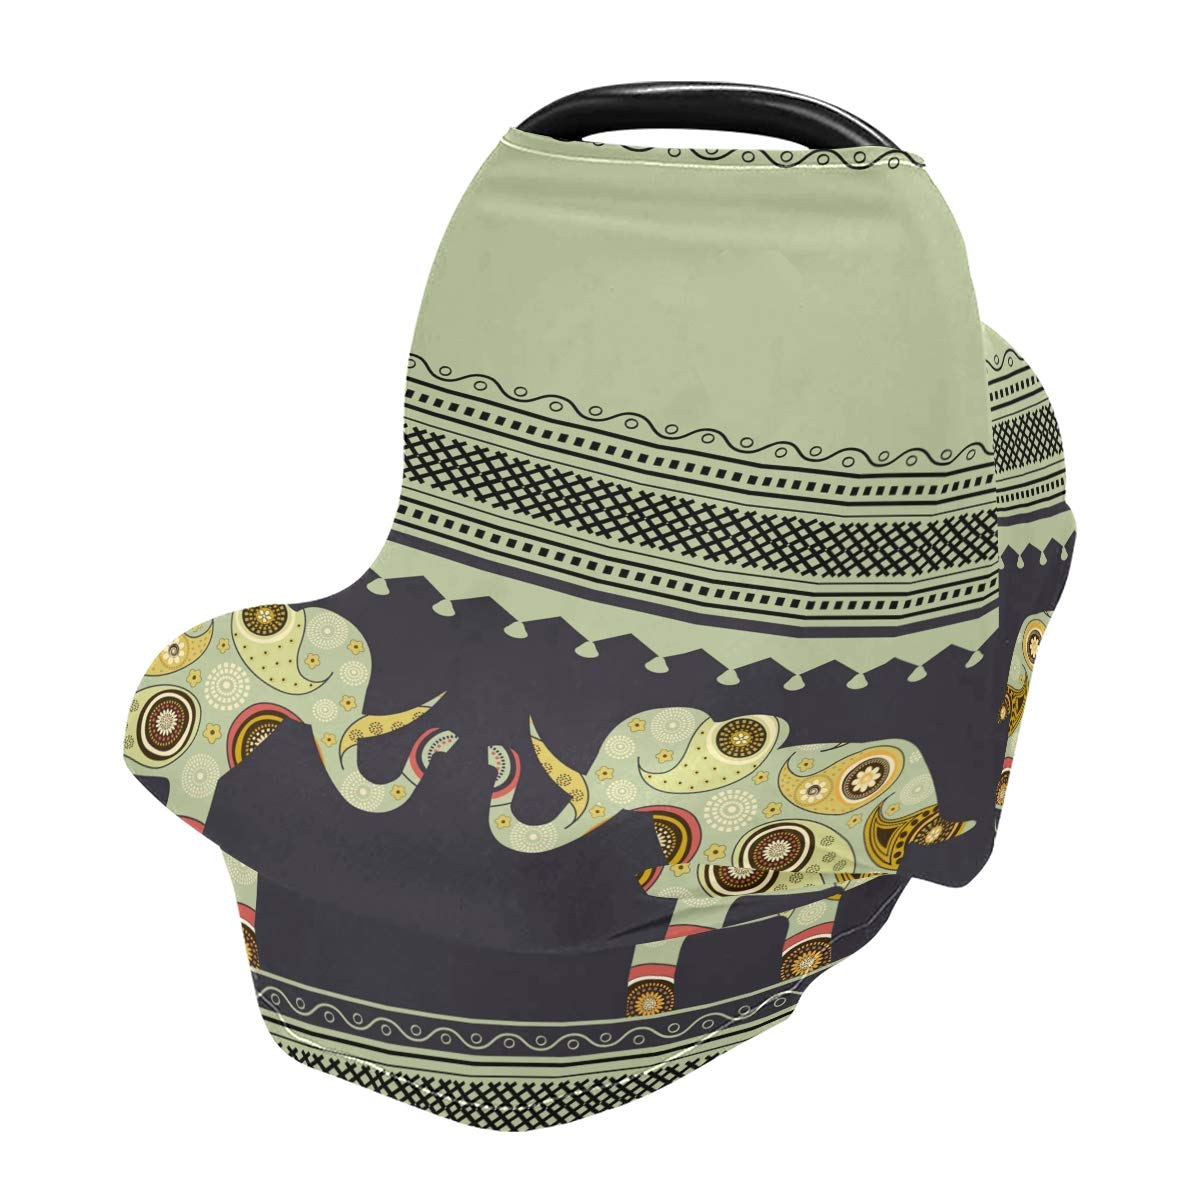 Nursing Cover Cute Elephant Breastfeeding Soft Carseat Canopy Multi Use for Baby Car Seat Covers Canopy Shopping Cart Cover Scarf Light Blanket Stroller Cover